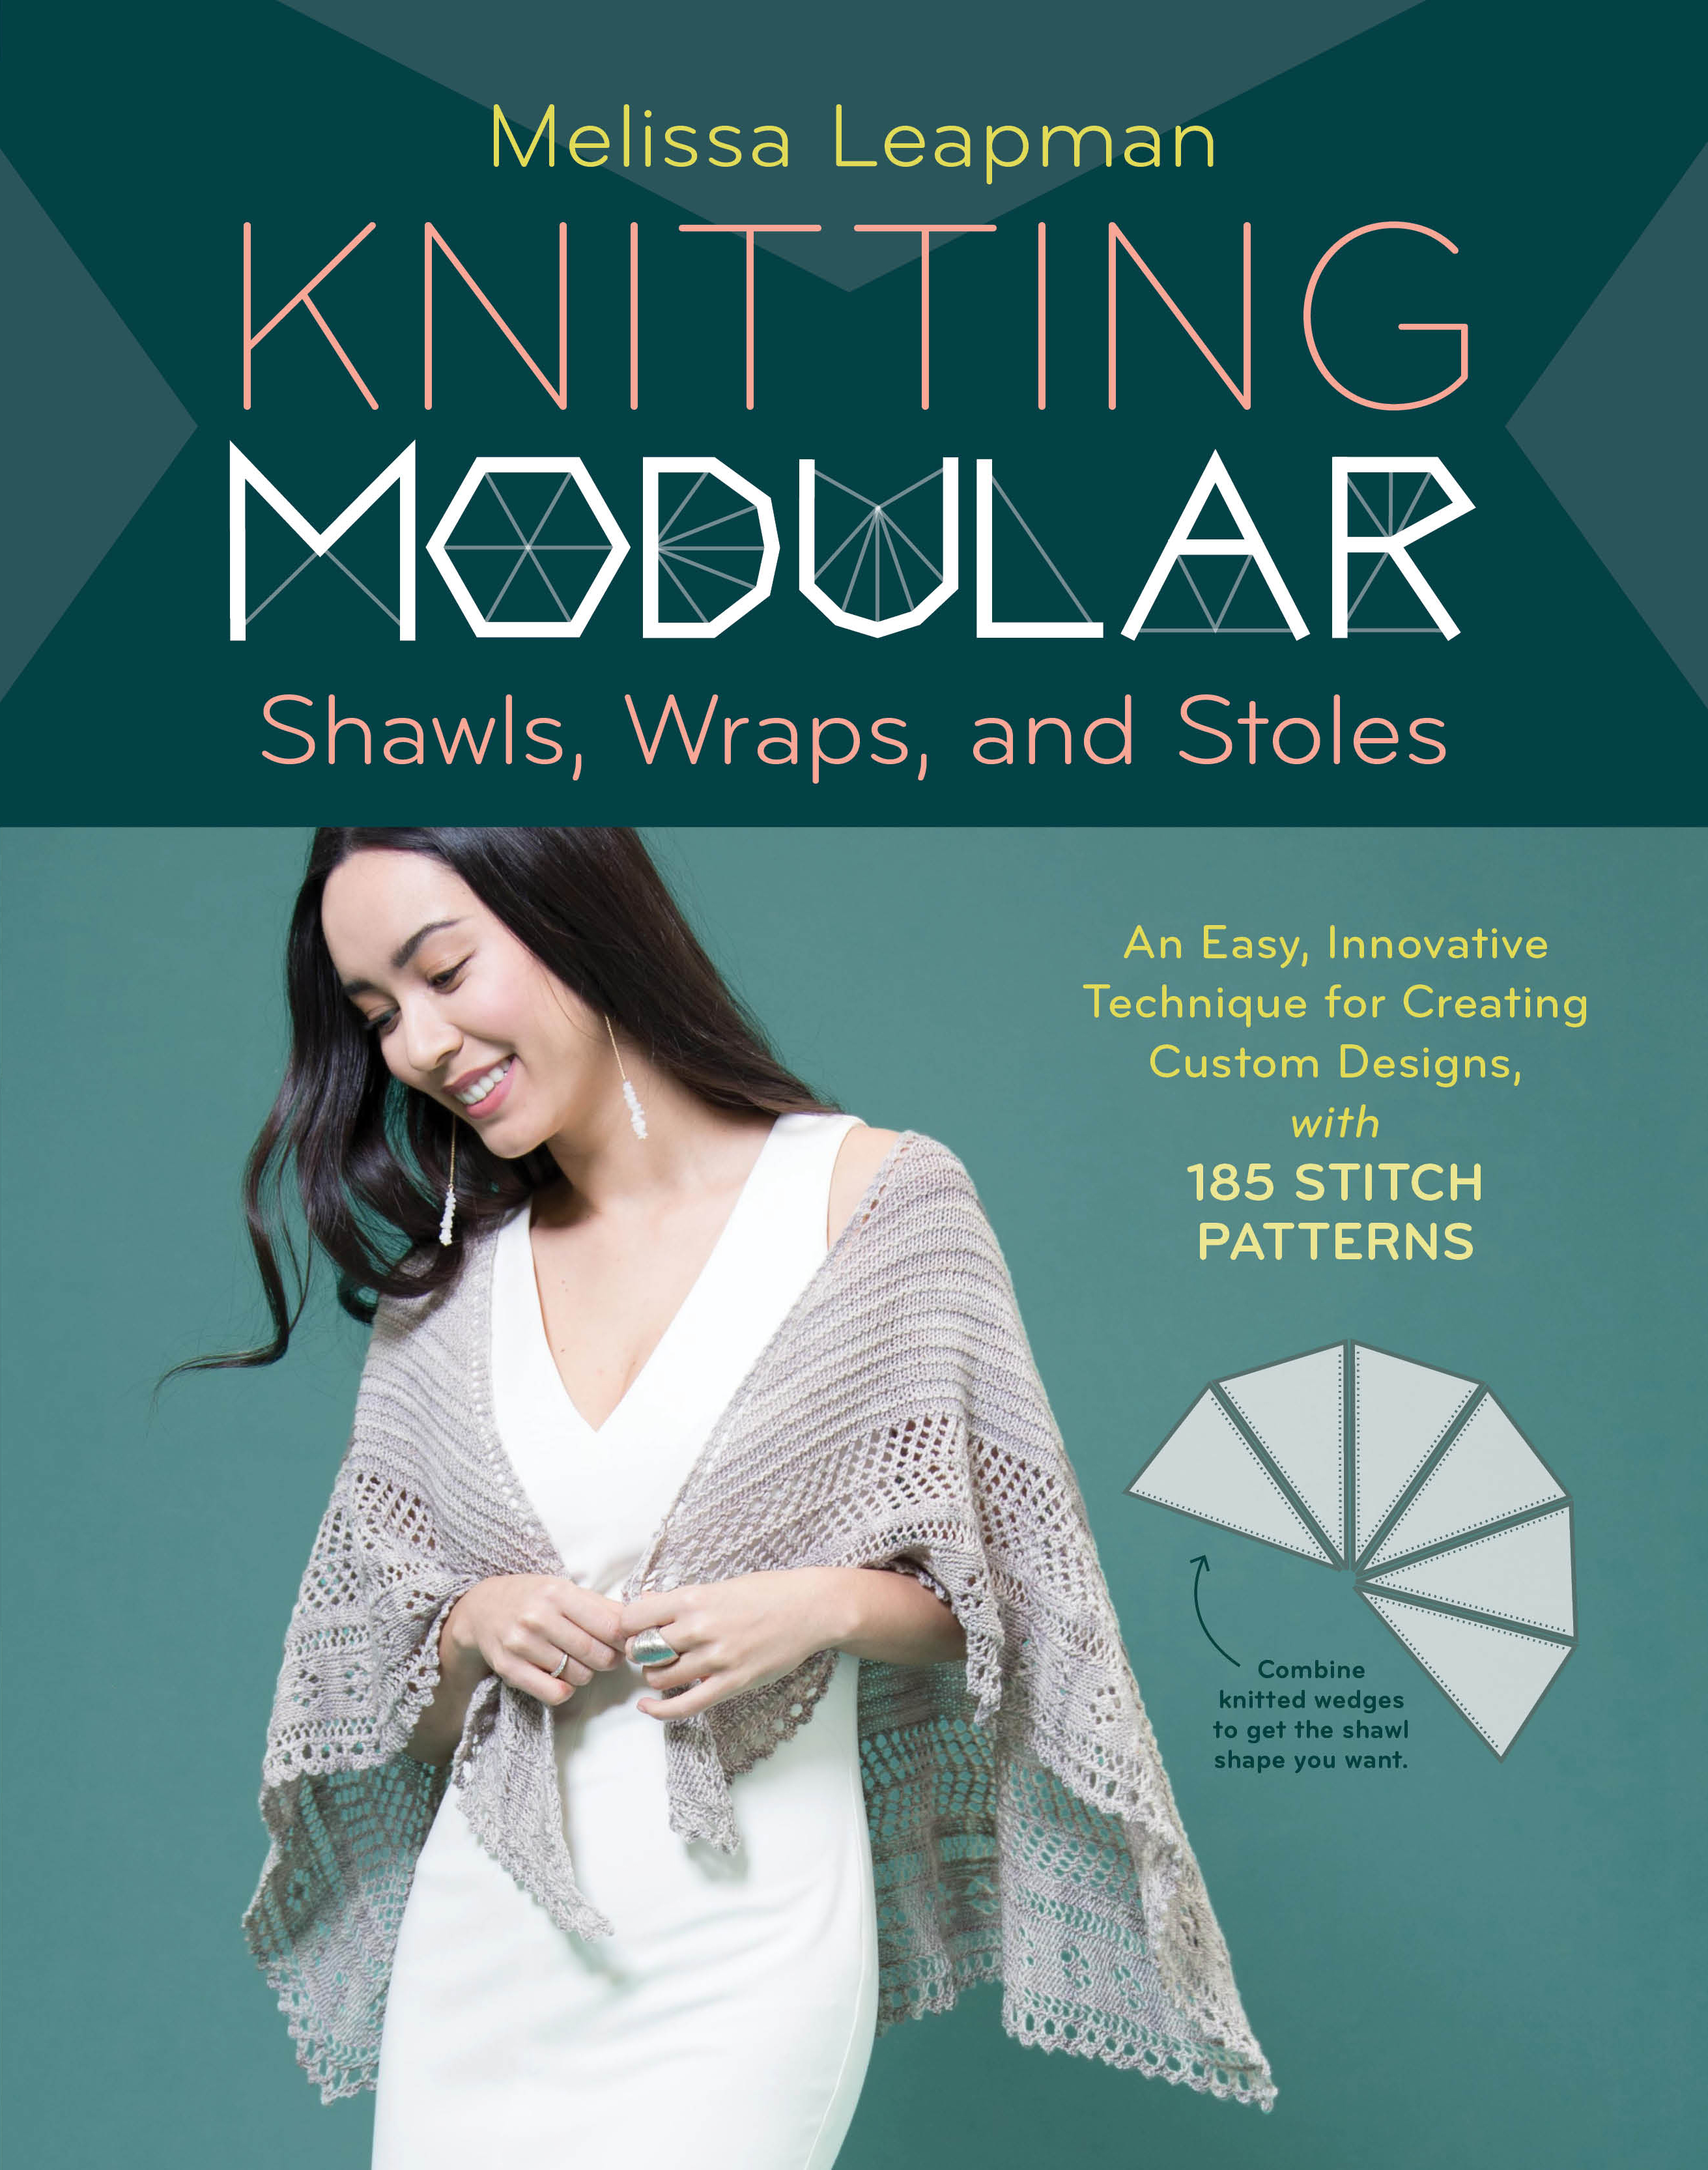 Knitting Modular Shawls, Wraps, and Stoles An Easy, Innovative Technique for Creating Custom Designs, with 185 Stitch Patterns - Melissa Leapman